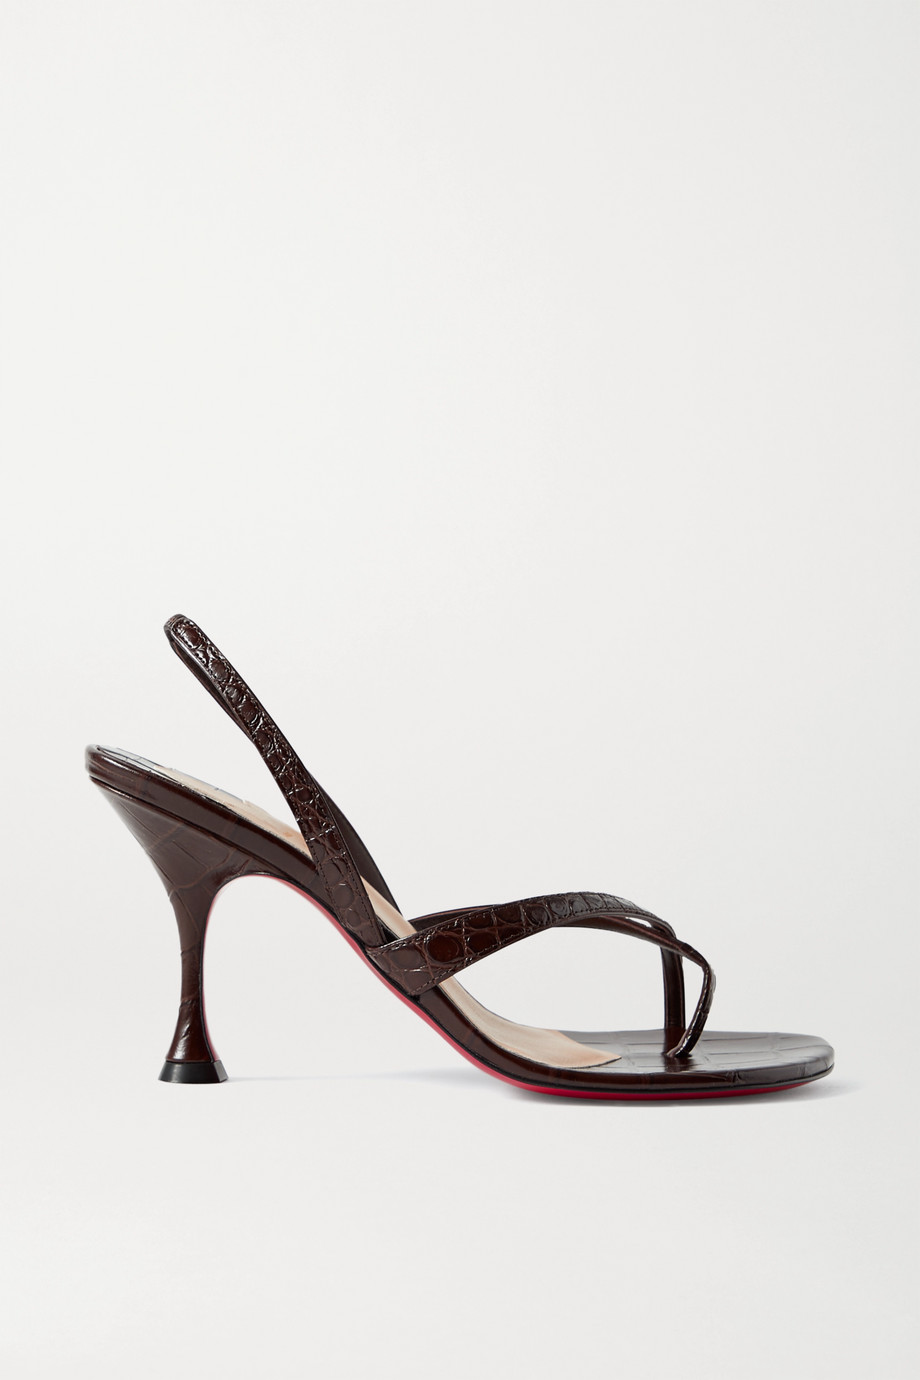 Christian Louboutin Taralita 85 croc-effect leather slingback sandals